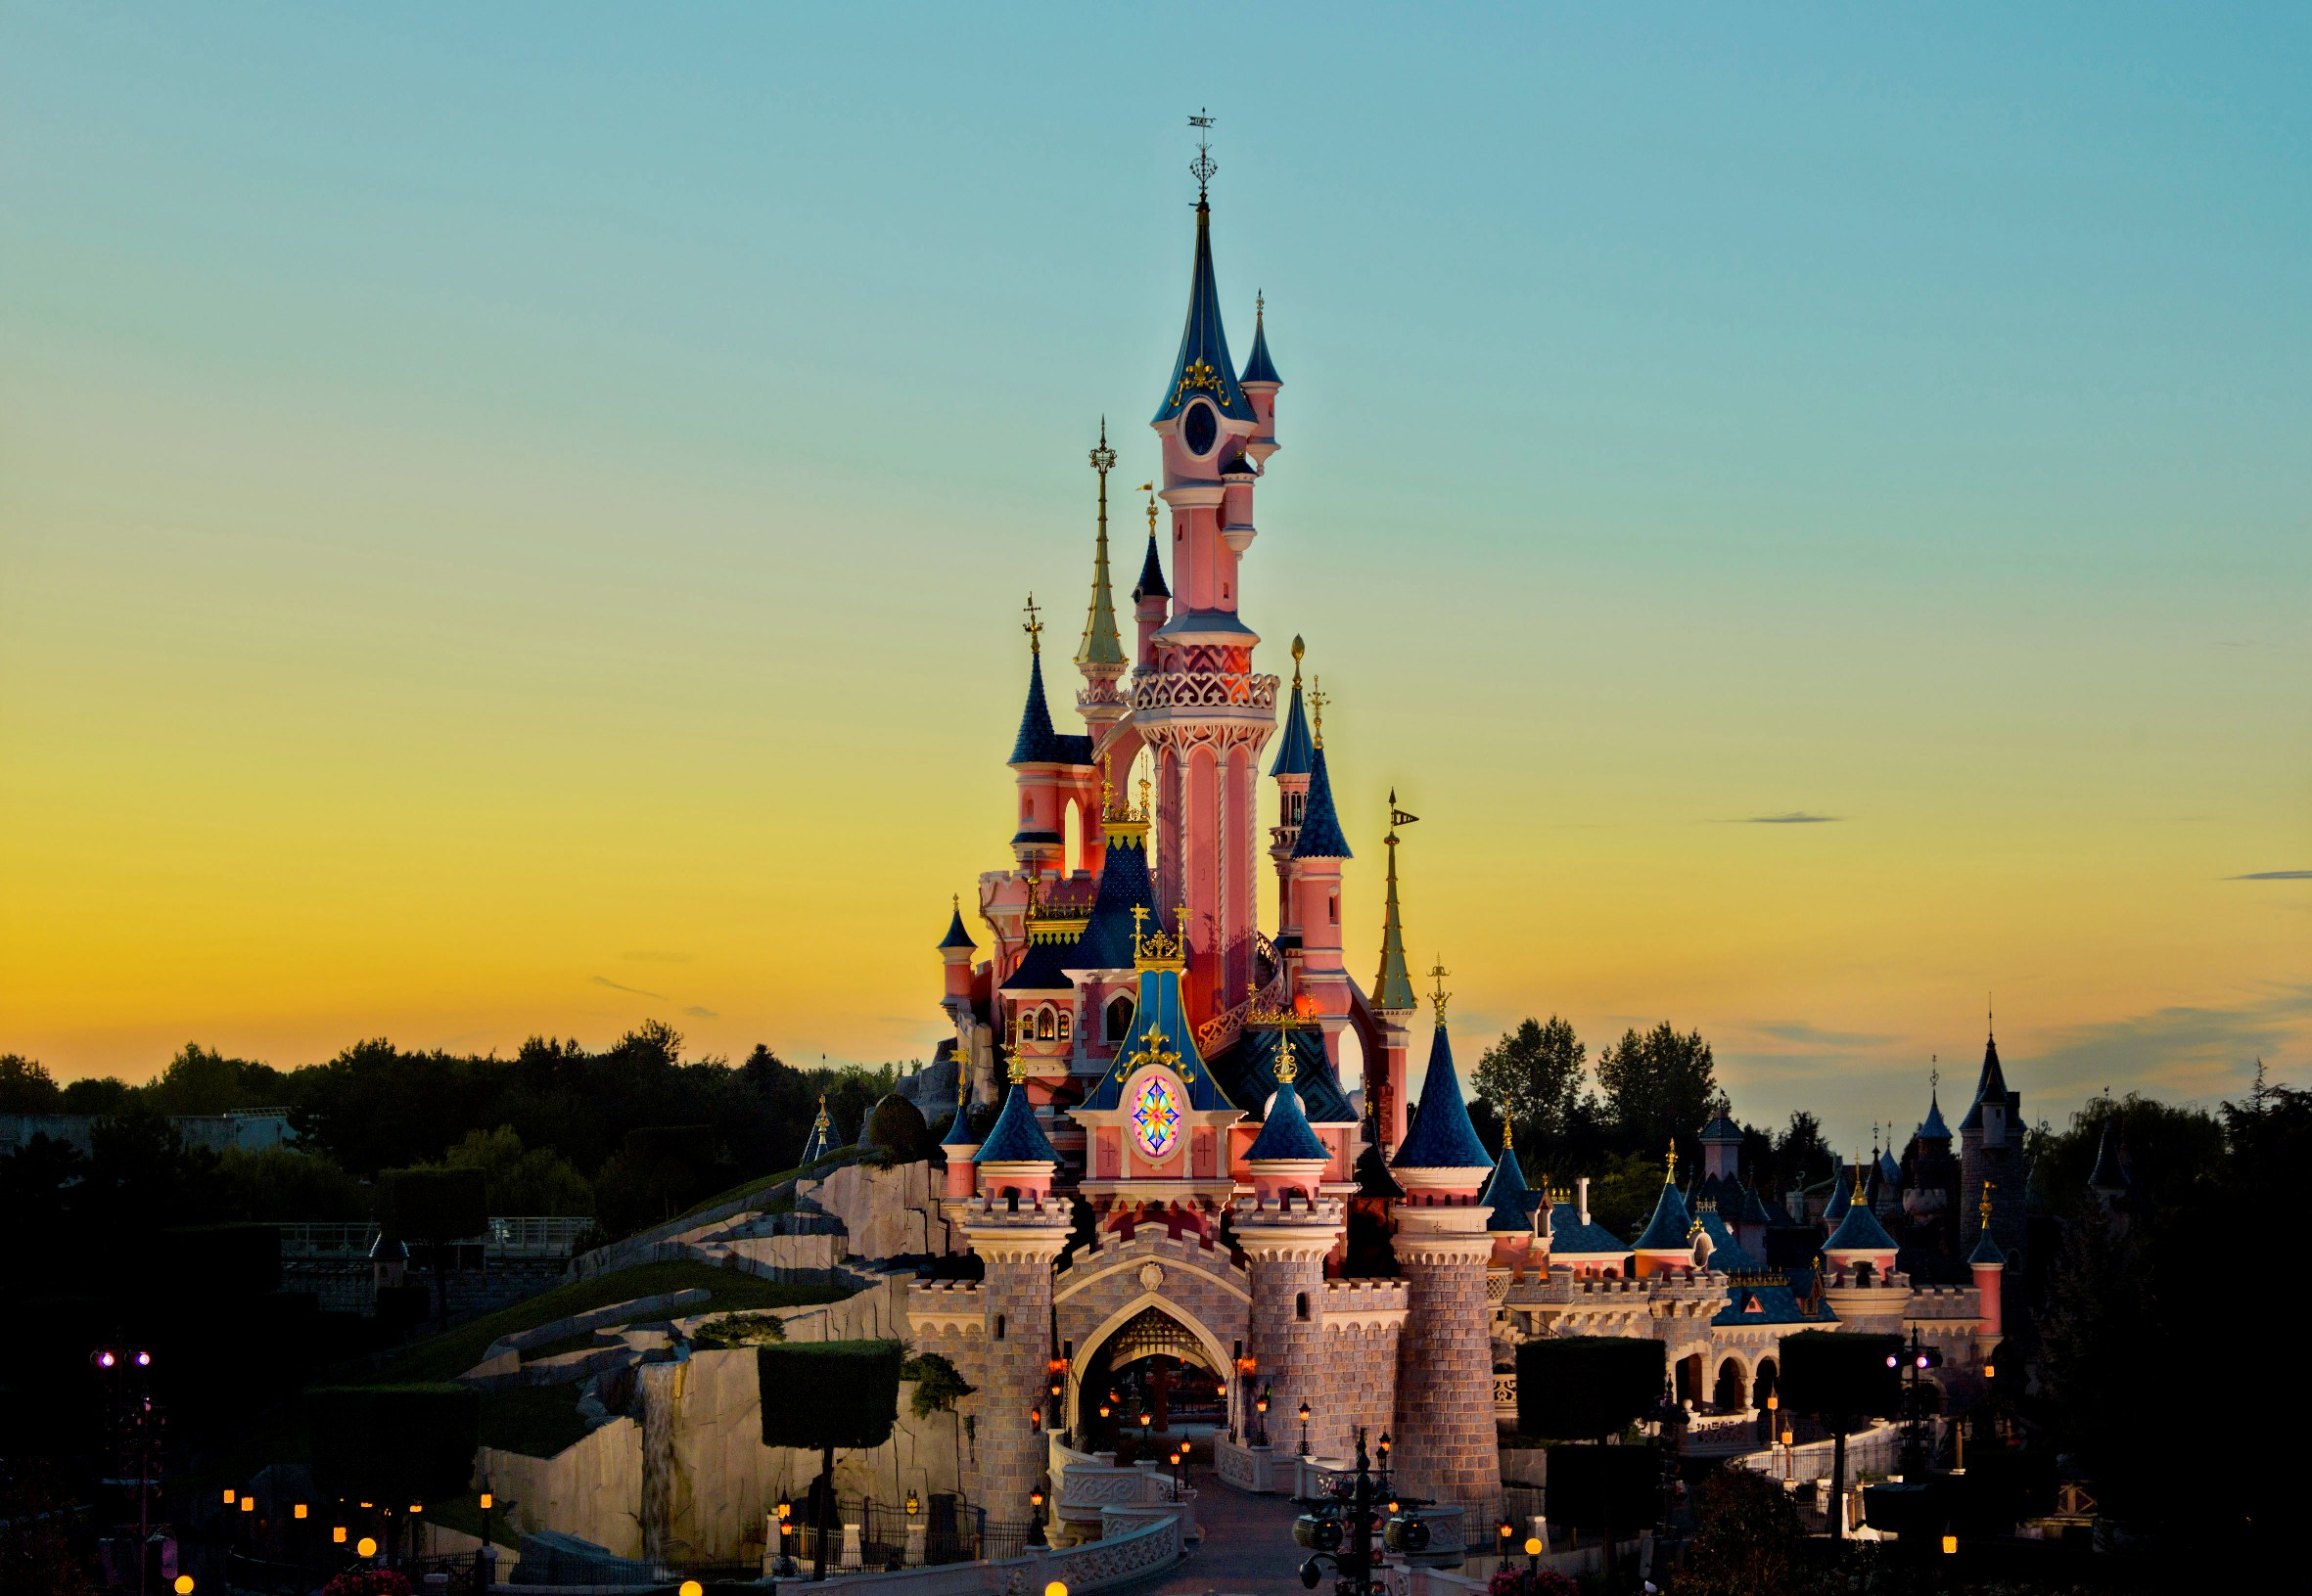 Season for new things! the new features unveiled for disneyland paris